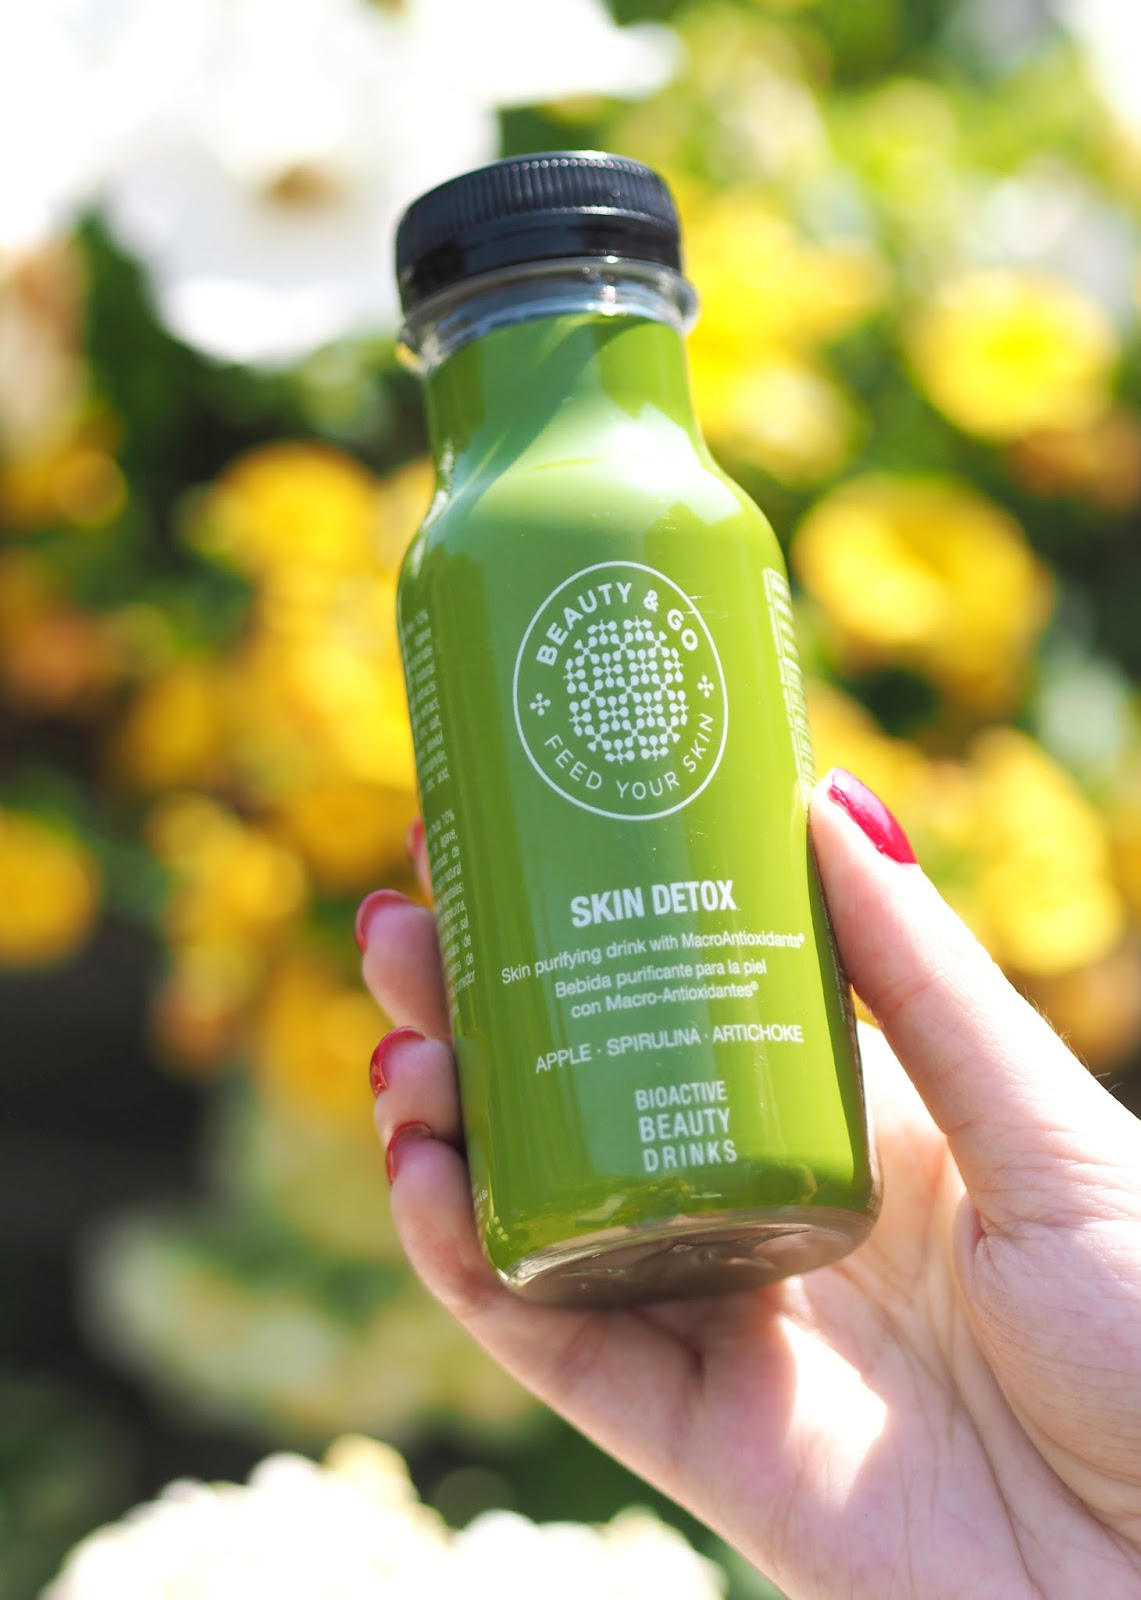 Beauty & Go Skin Drinks, Katie Kirk Loves, UK Blogger, Skin Detox, Summer Skin, Beauty Drinks, Health Drinks, Vitamins, Beauty Blogger, Clearer Skin, Skincare Blogger Beauty Review, Beauty Drink Review